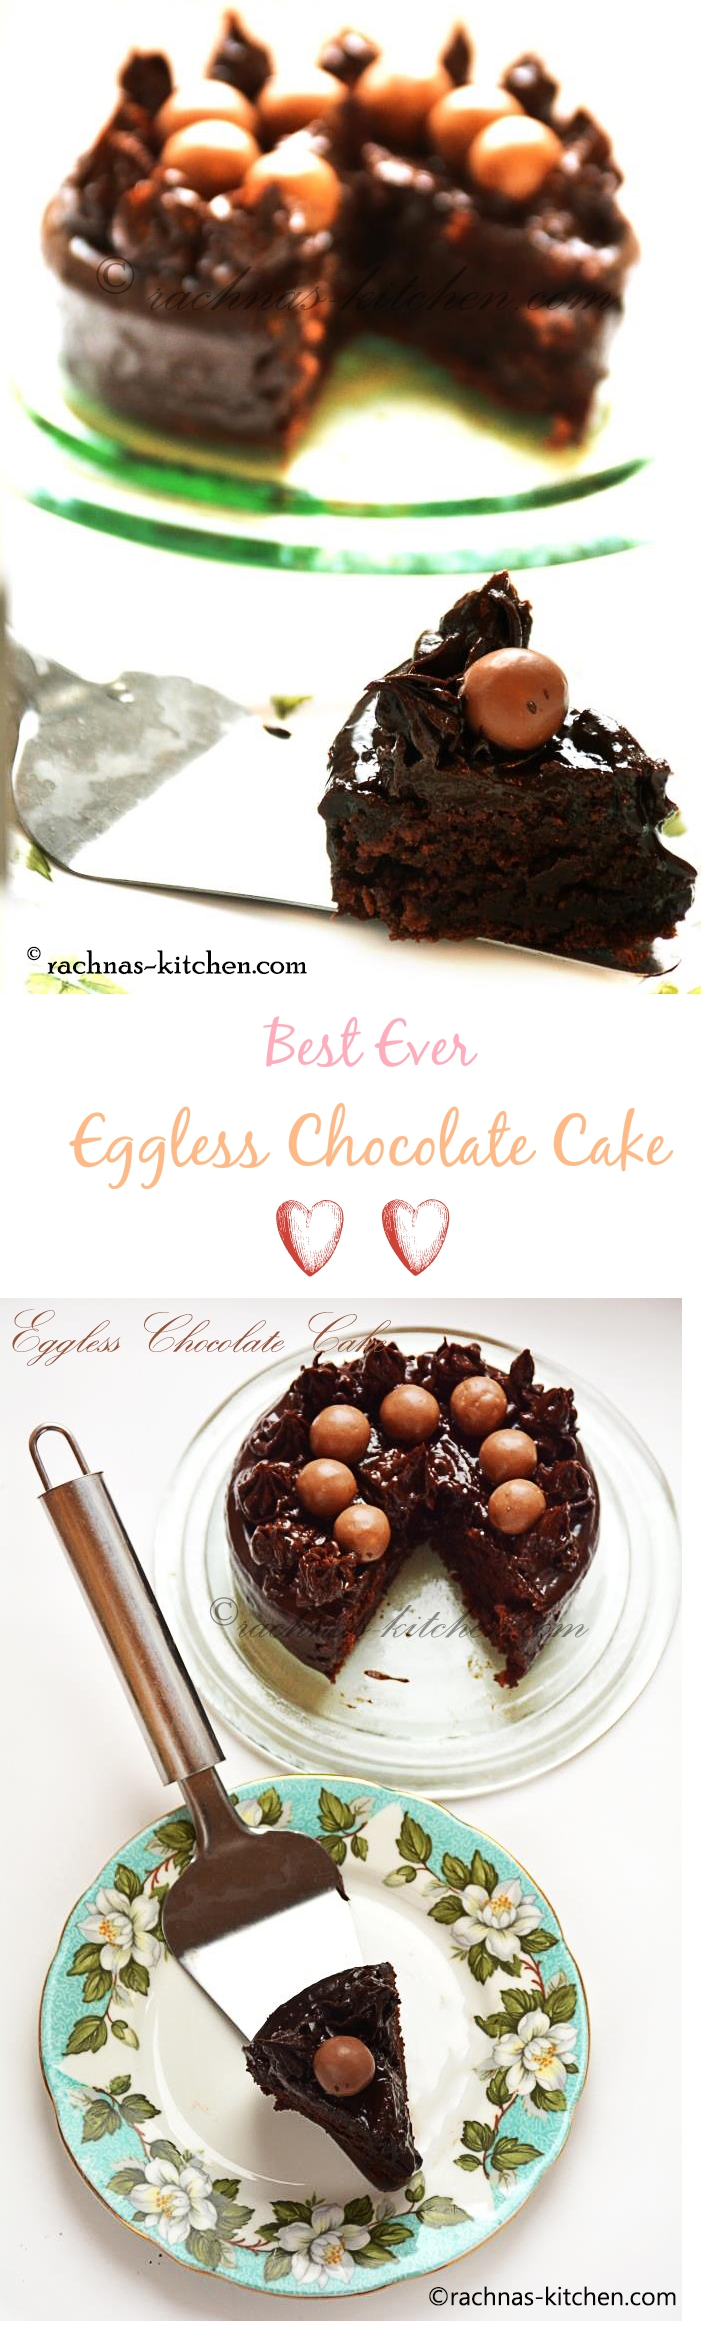 best ever eggless chocolate cake